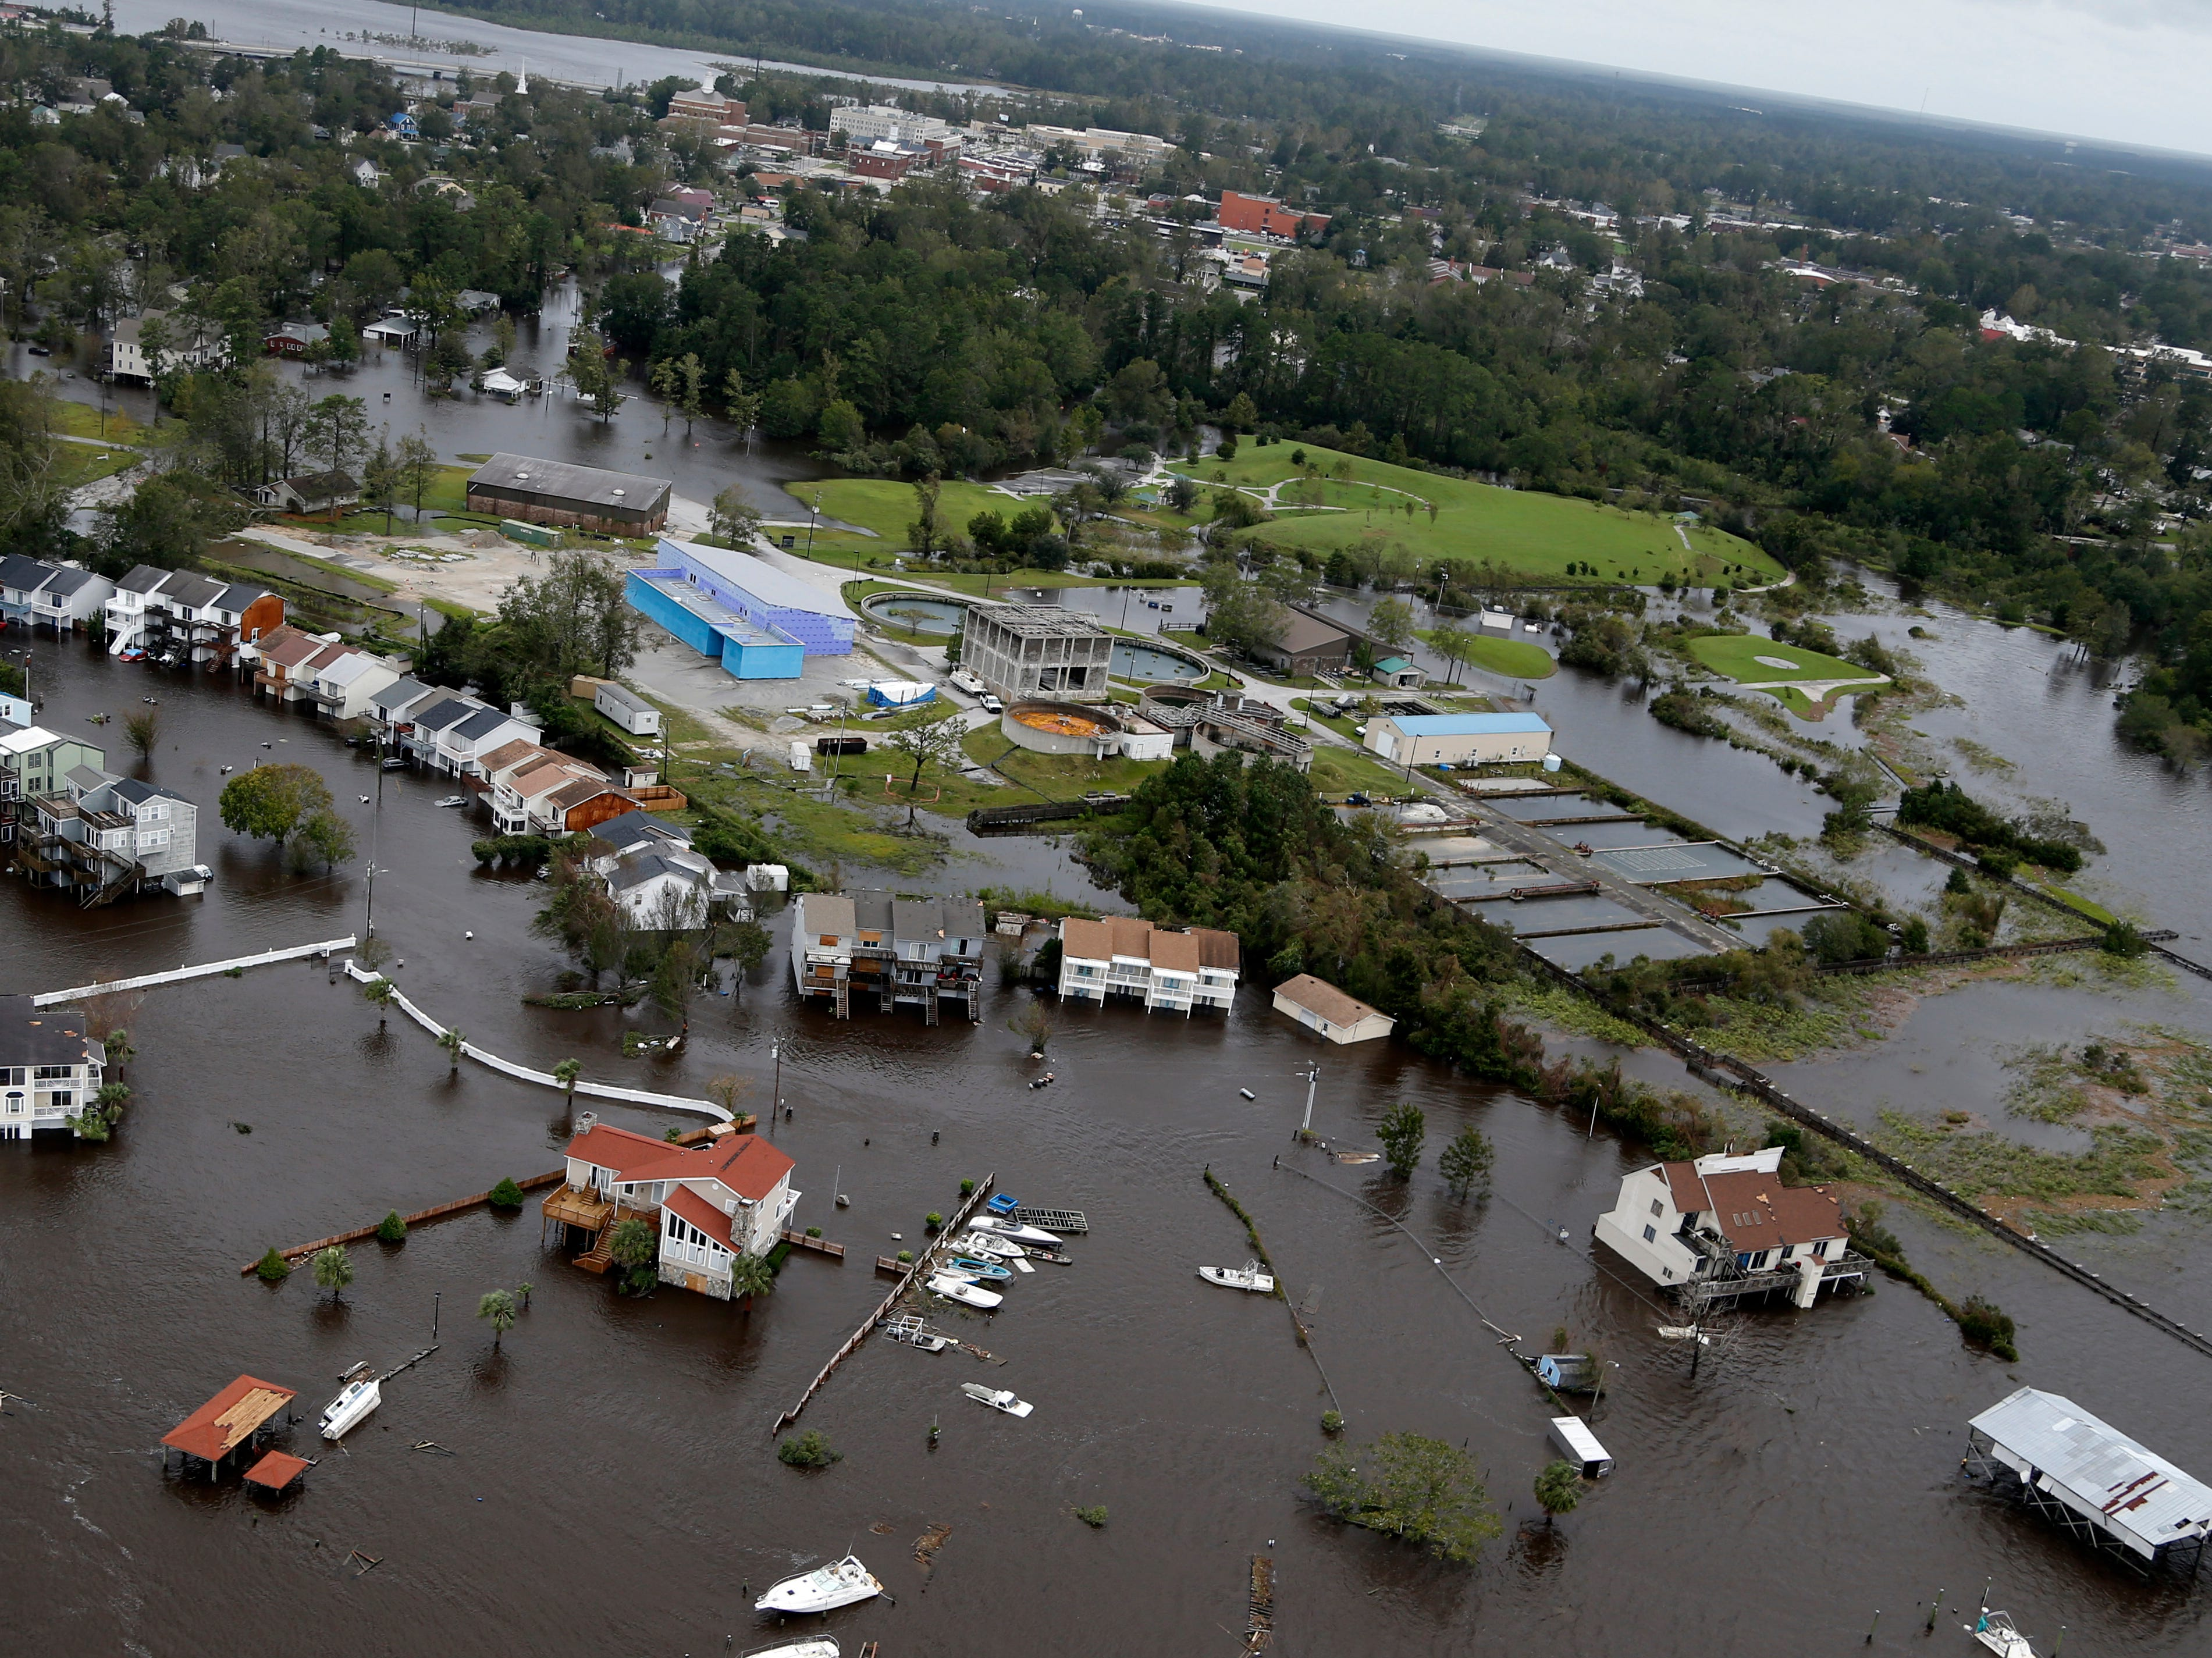 Homes and a marina are flooded as a result of high tides and rain from hurricane Florence which moved through the area in Jacksonville, N.C., Sunday, Sept. 16, 2018.